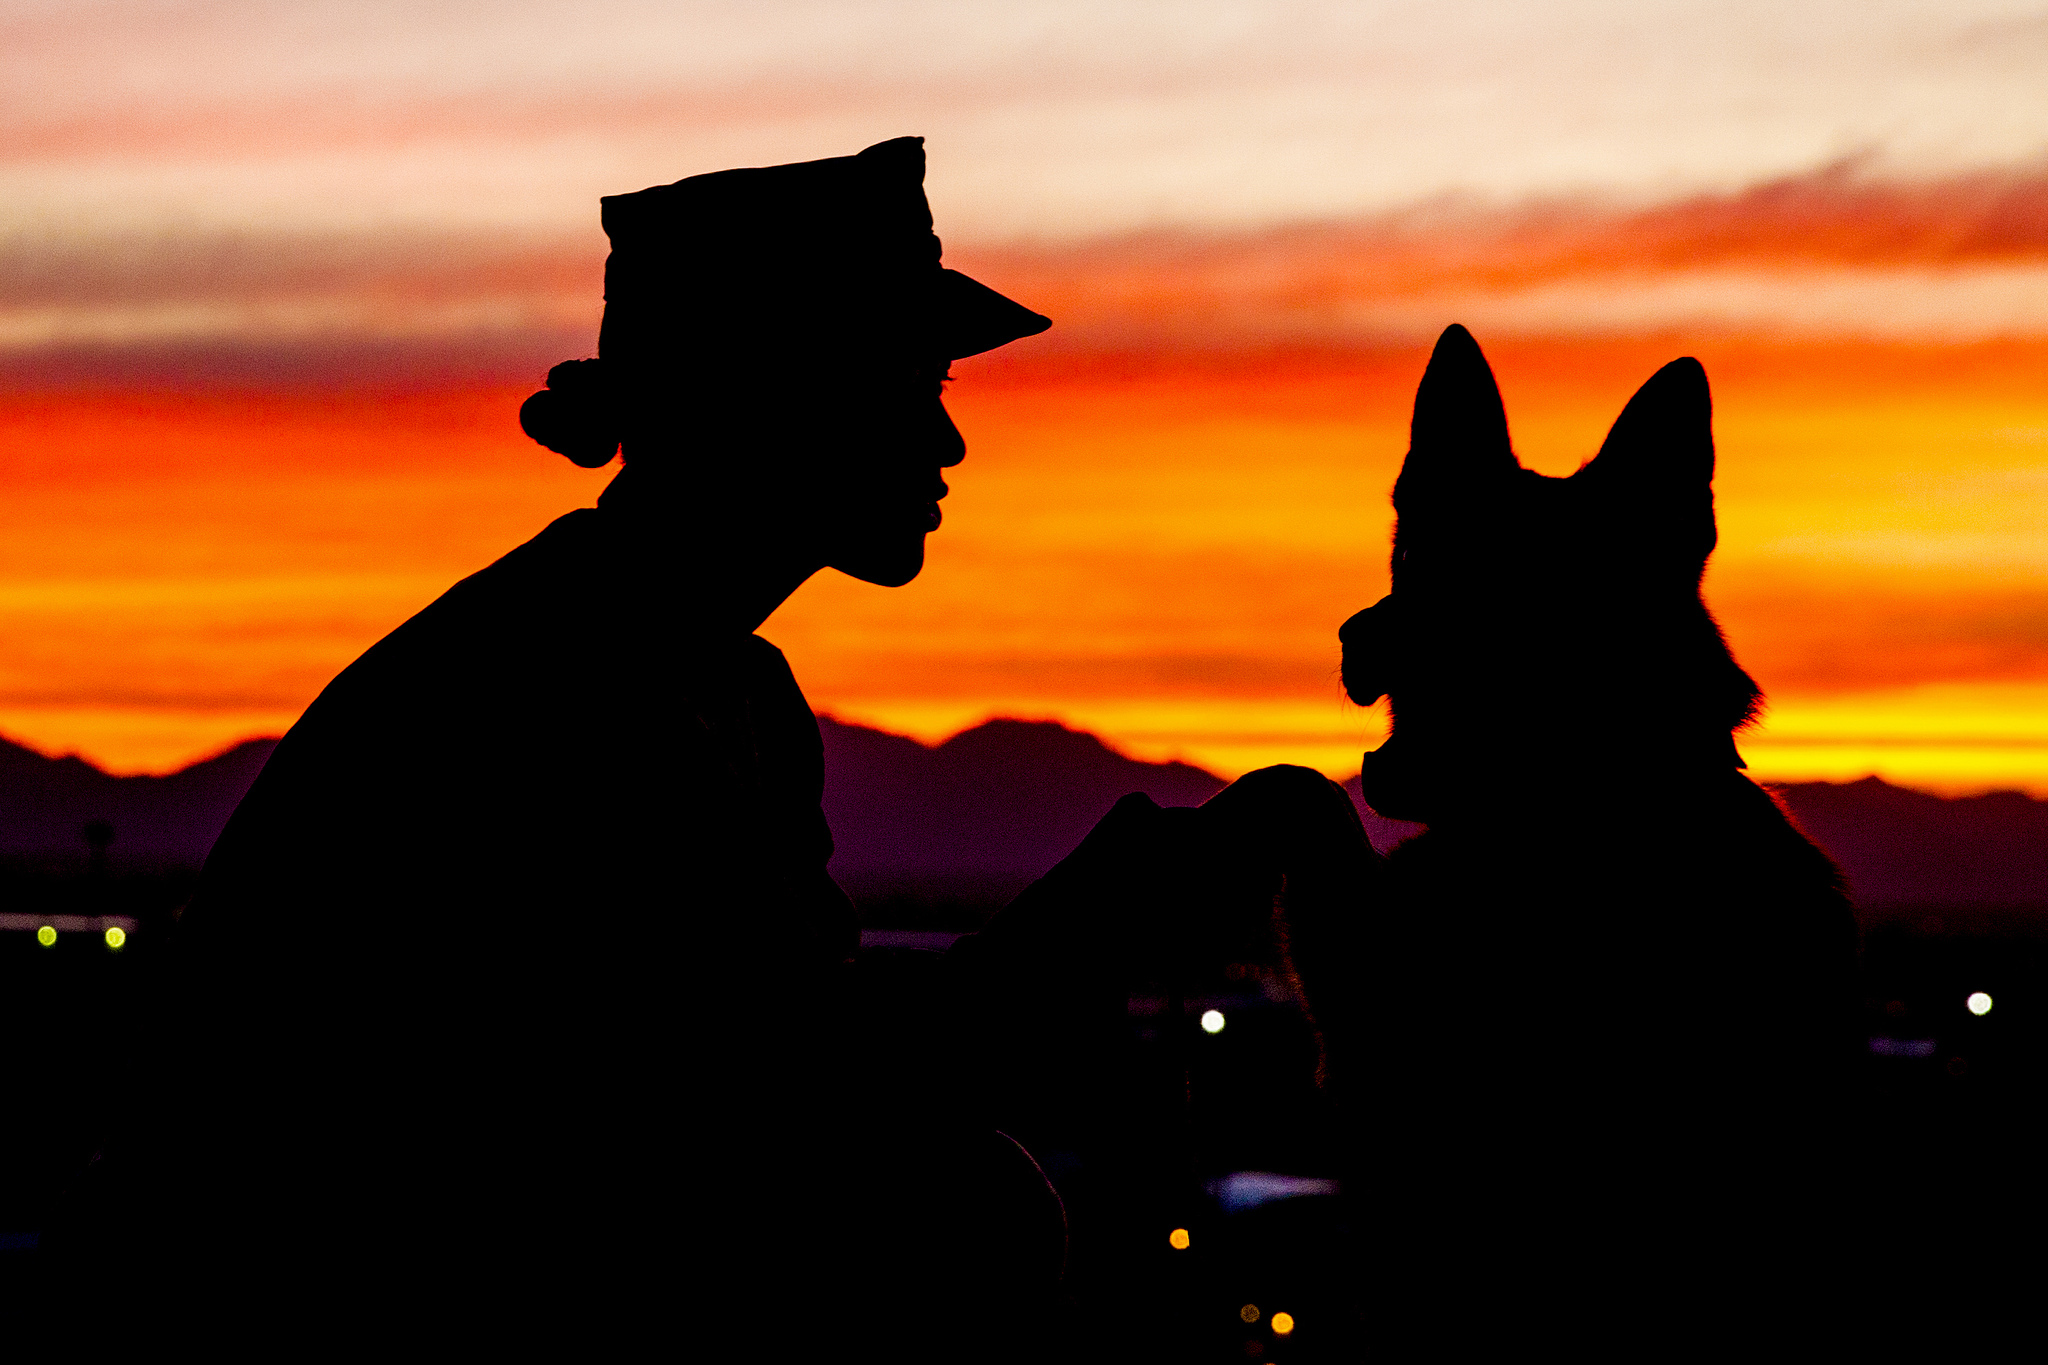 Dog handler Sgt. Jenna L. Cauble poses for a photo with her military working dog, Ken, on Marine Corps Air Station Yuma, Ariz., on Jan. 18, 2019. (Sgt. Allison Lotz/Marine Corps)